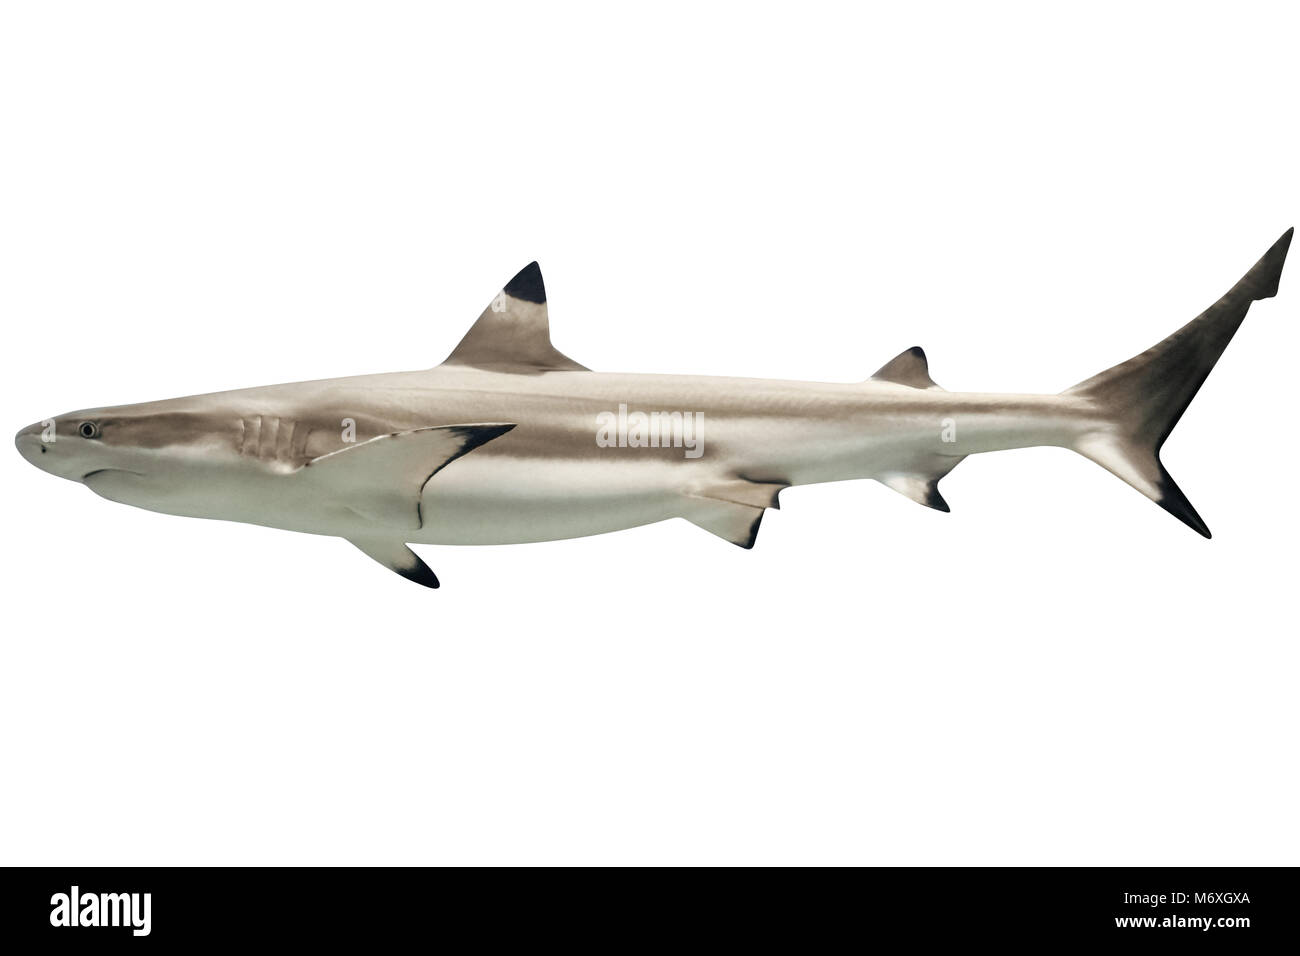 Side view of Australian blacktip shark, Carcharhinus tilstoni, isolated on white. Is a species of requiem shark, - Stock Image